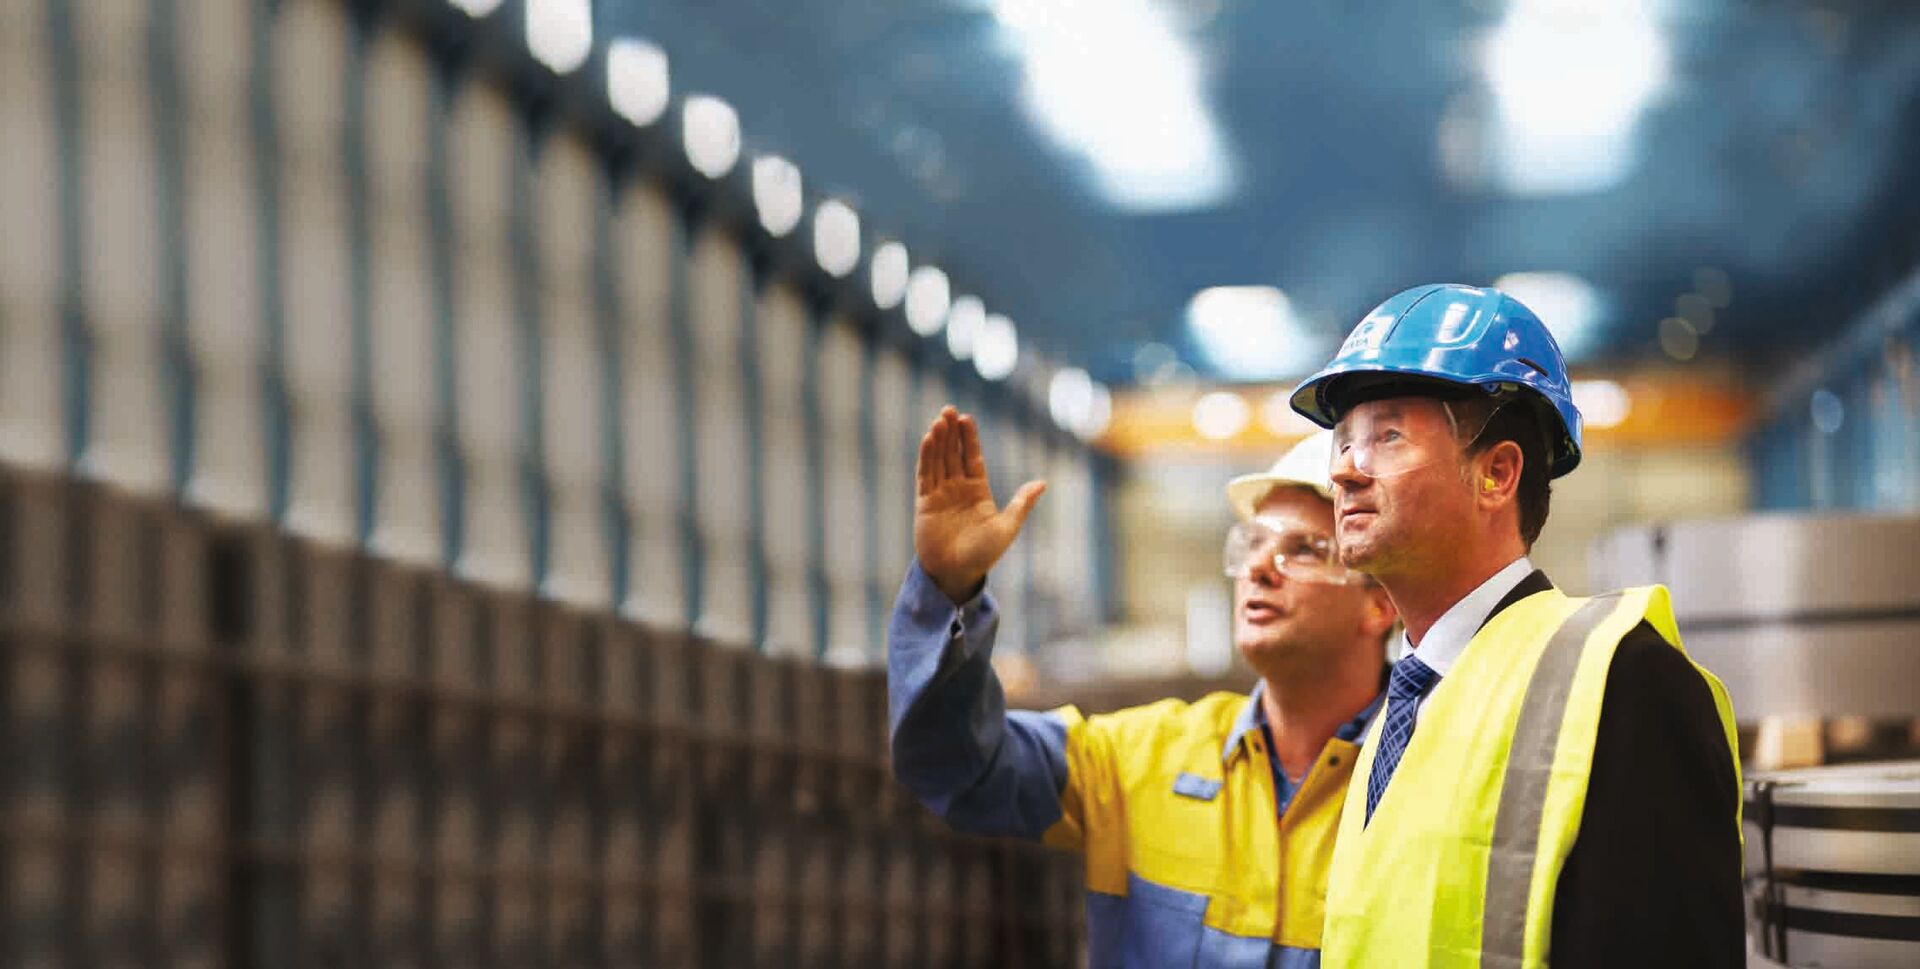 Tata Steel employees in a manufacturing environment wearing protective equipment